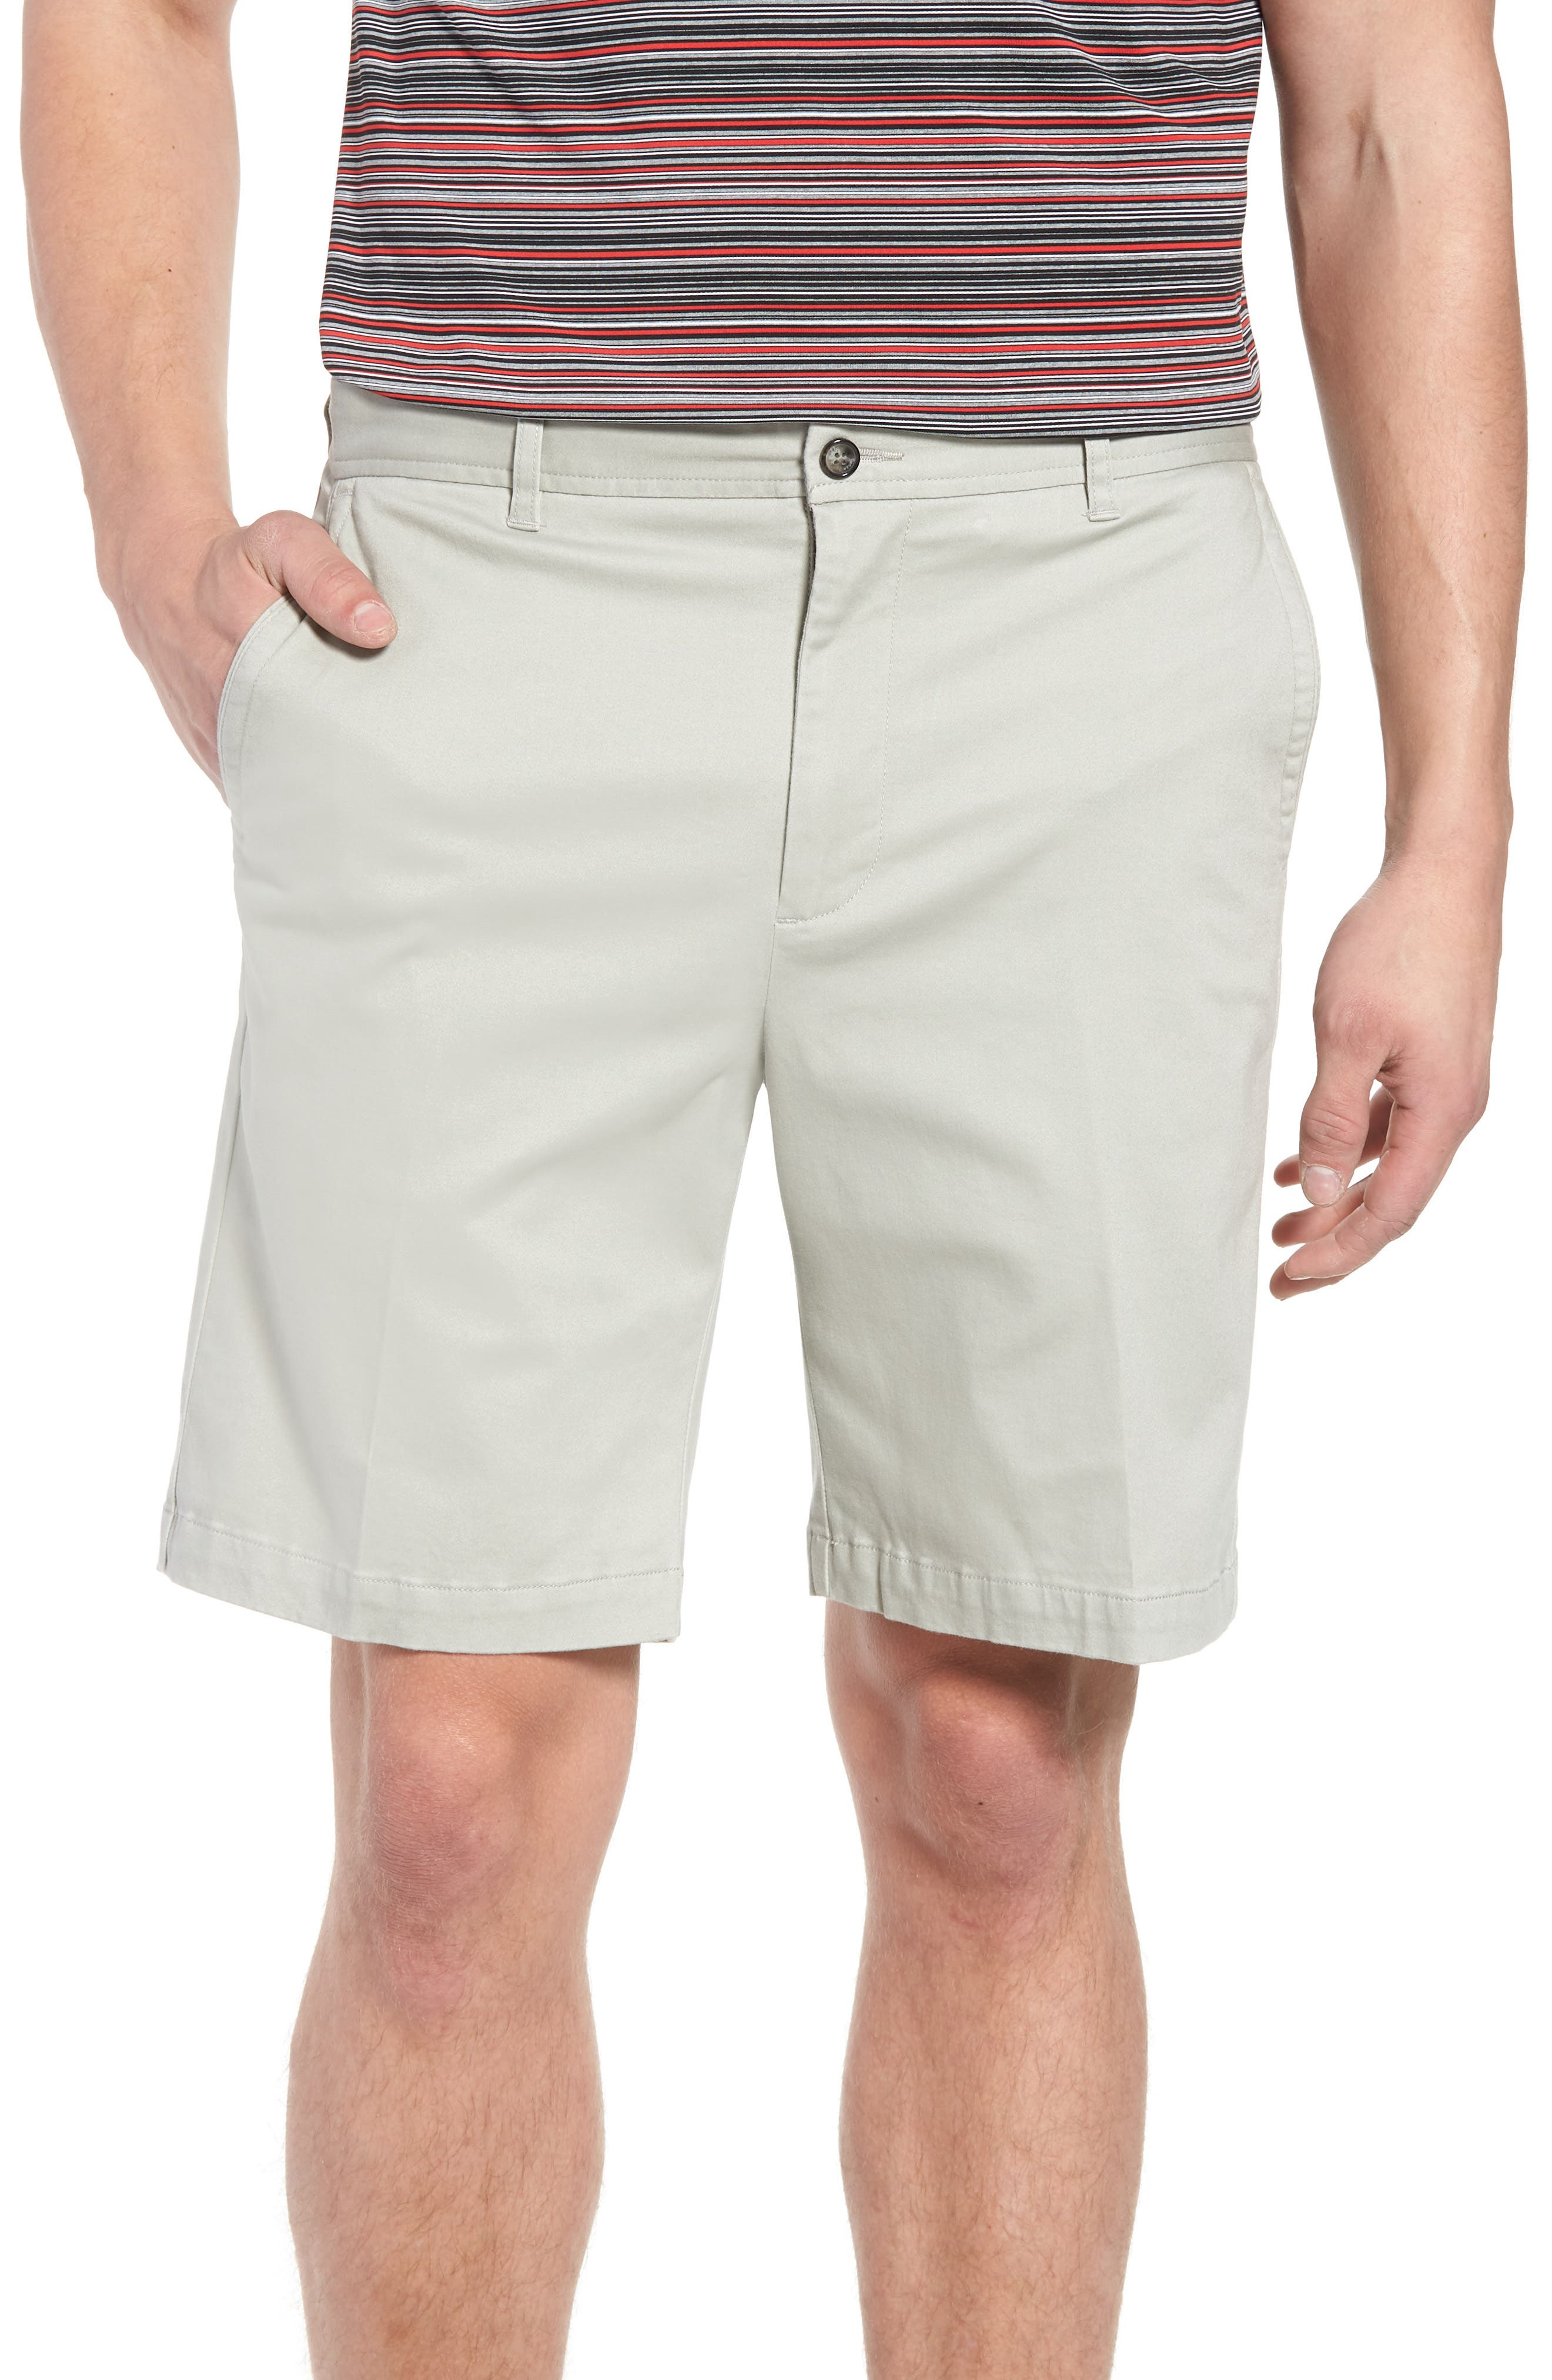 St. Charles Stretch Twill Shorts,                         Main,                         color, 051